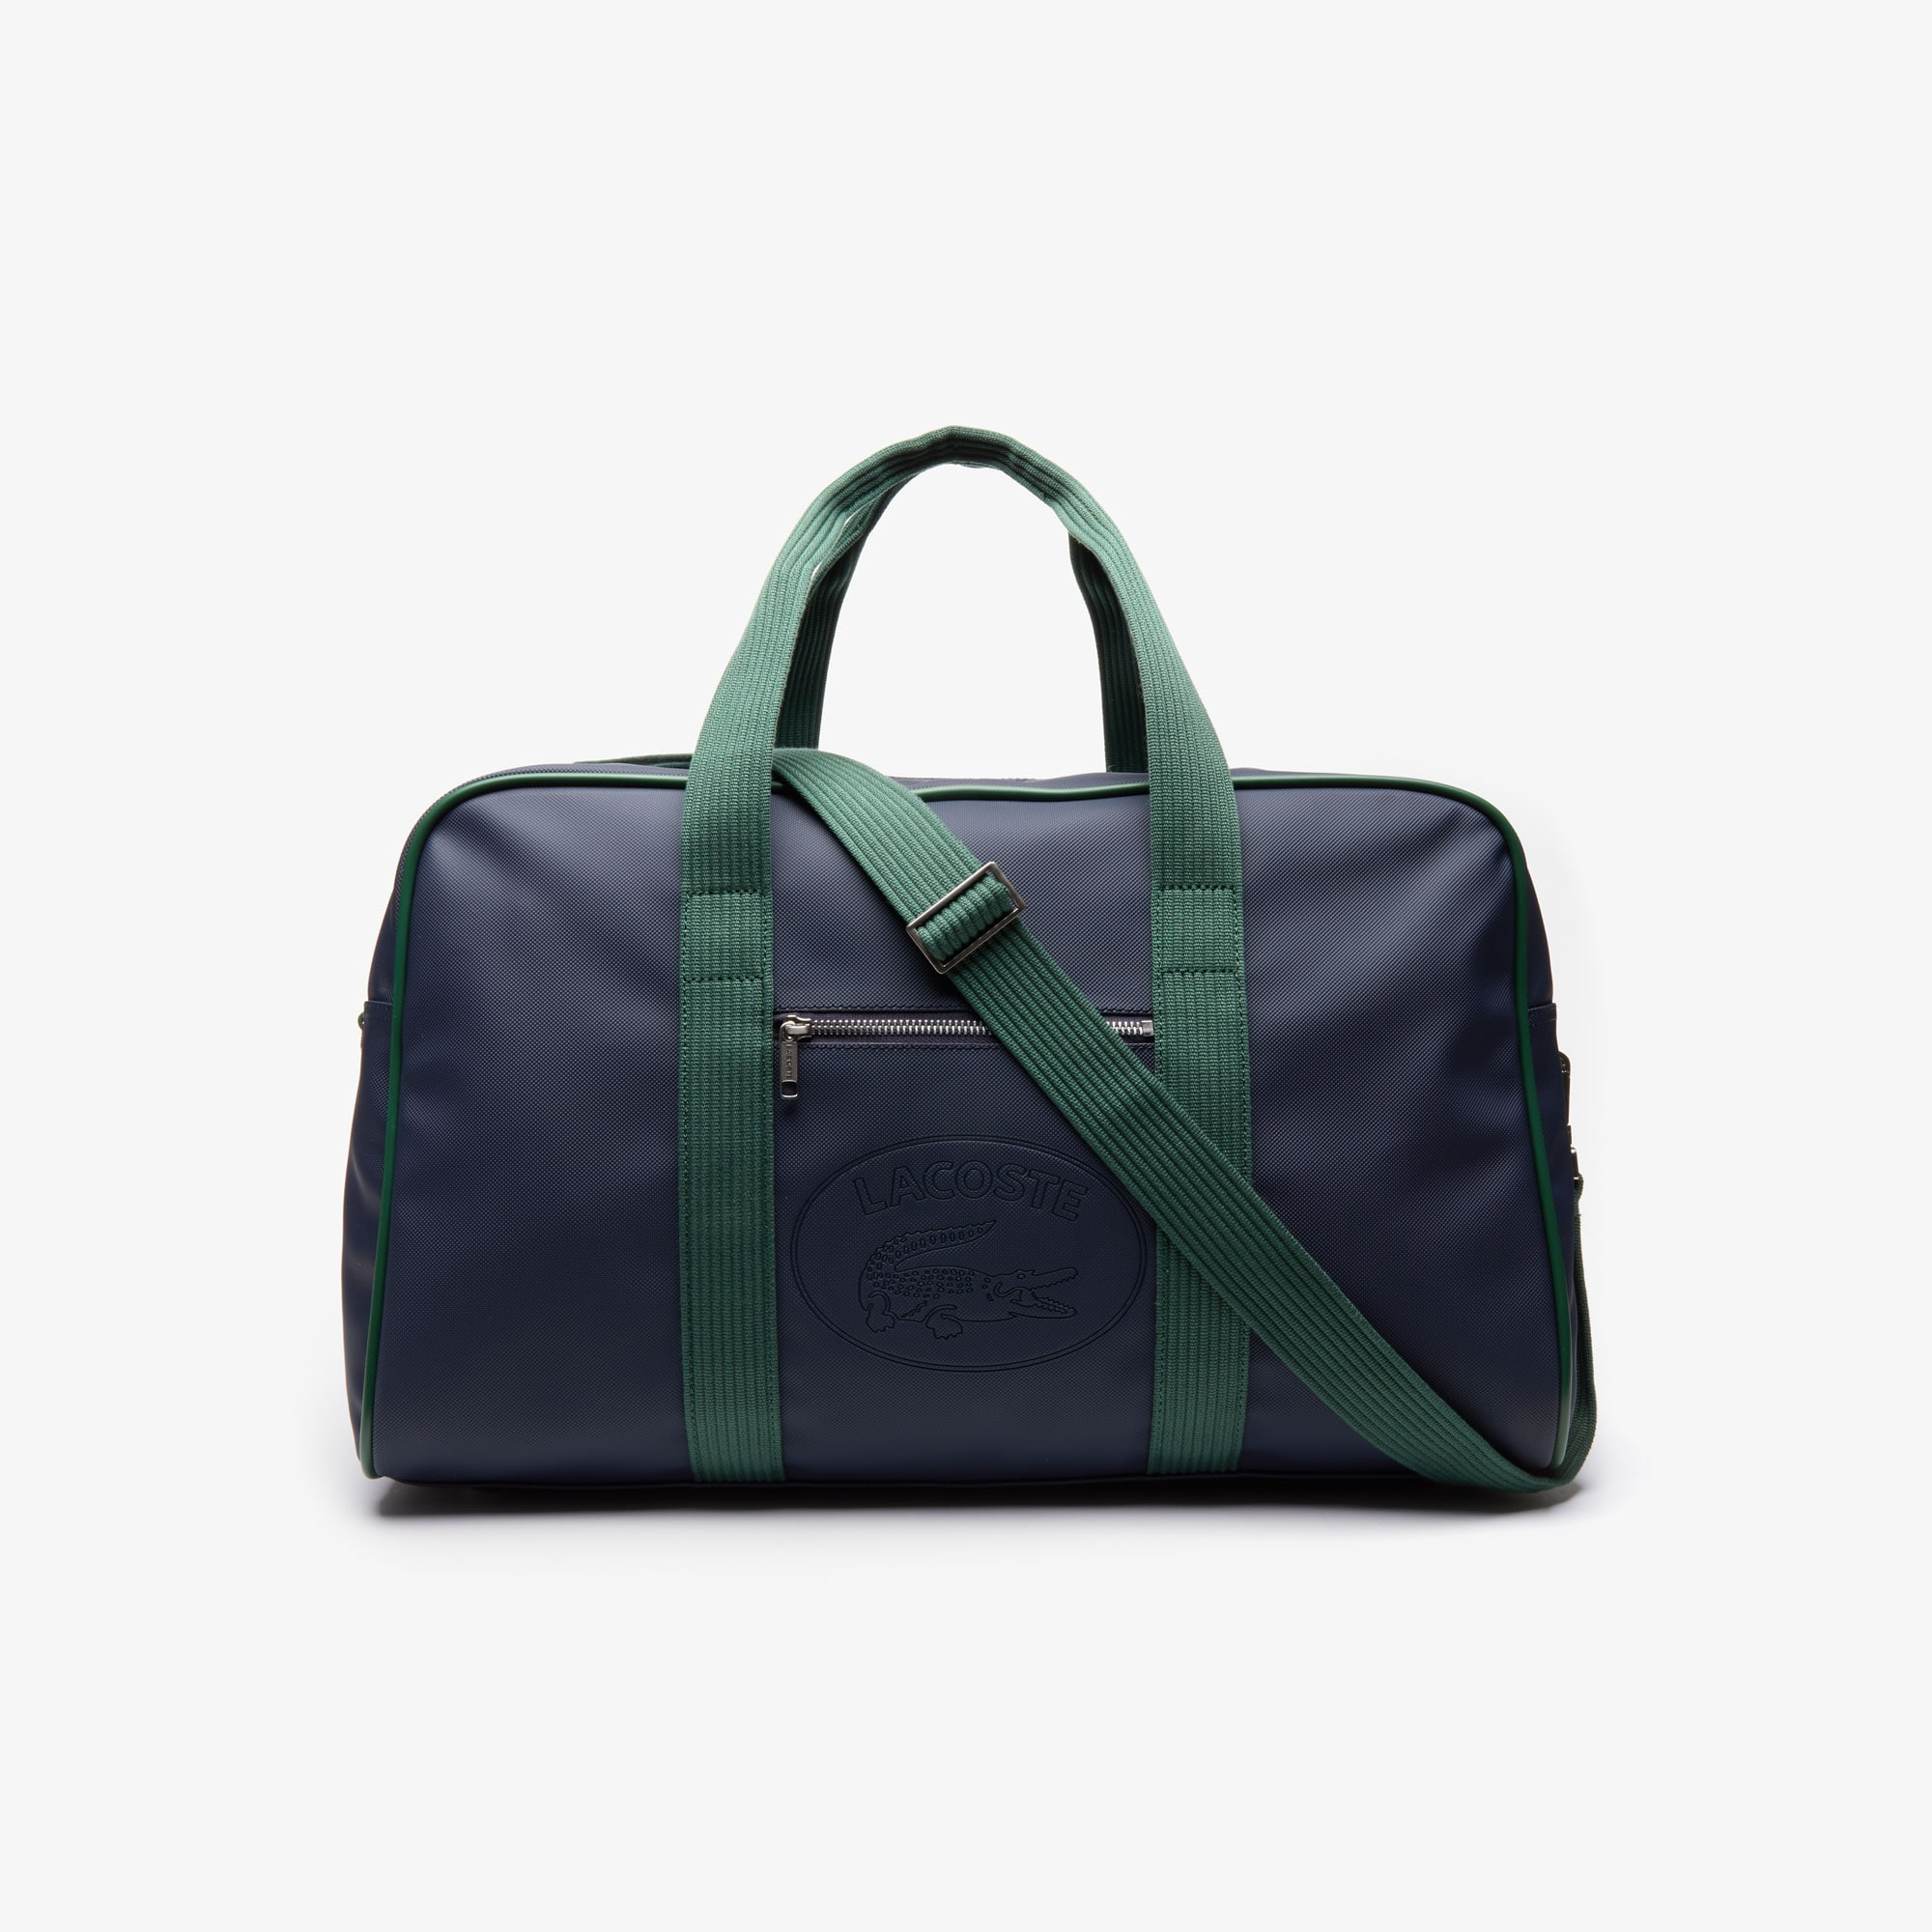 라코스테 1930년대 레터링 위켄드백 Lacoste Mens 1930s Original Embossed Lettering Weekend Bag,PEACOAT GREEN